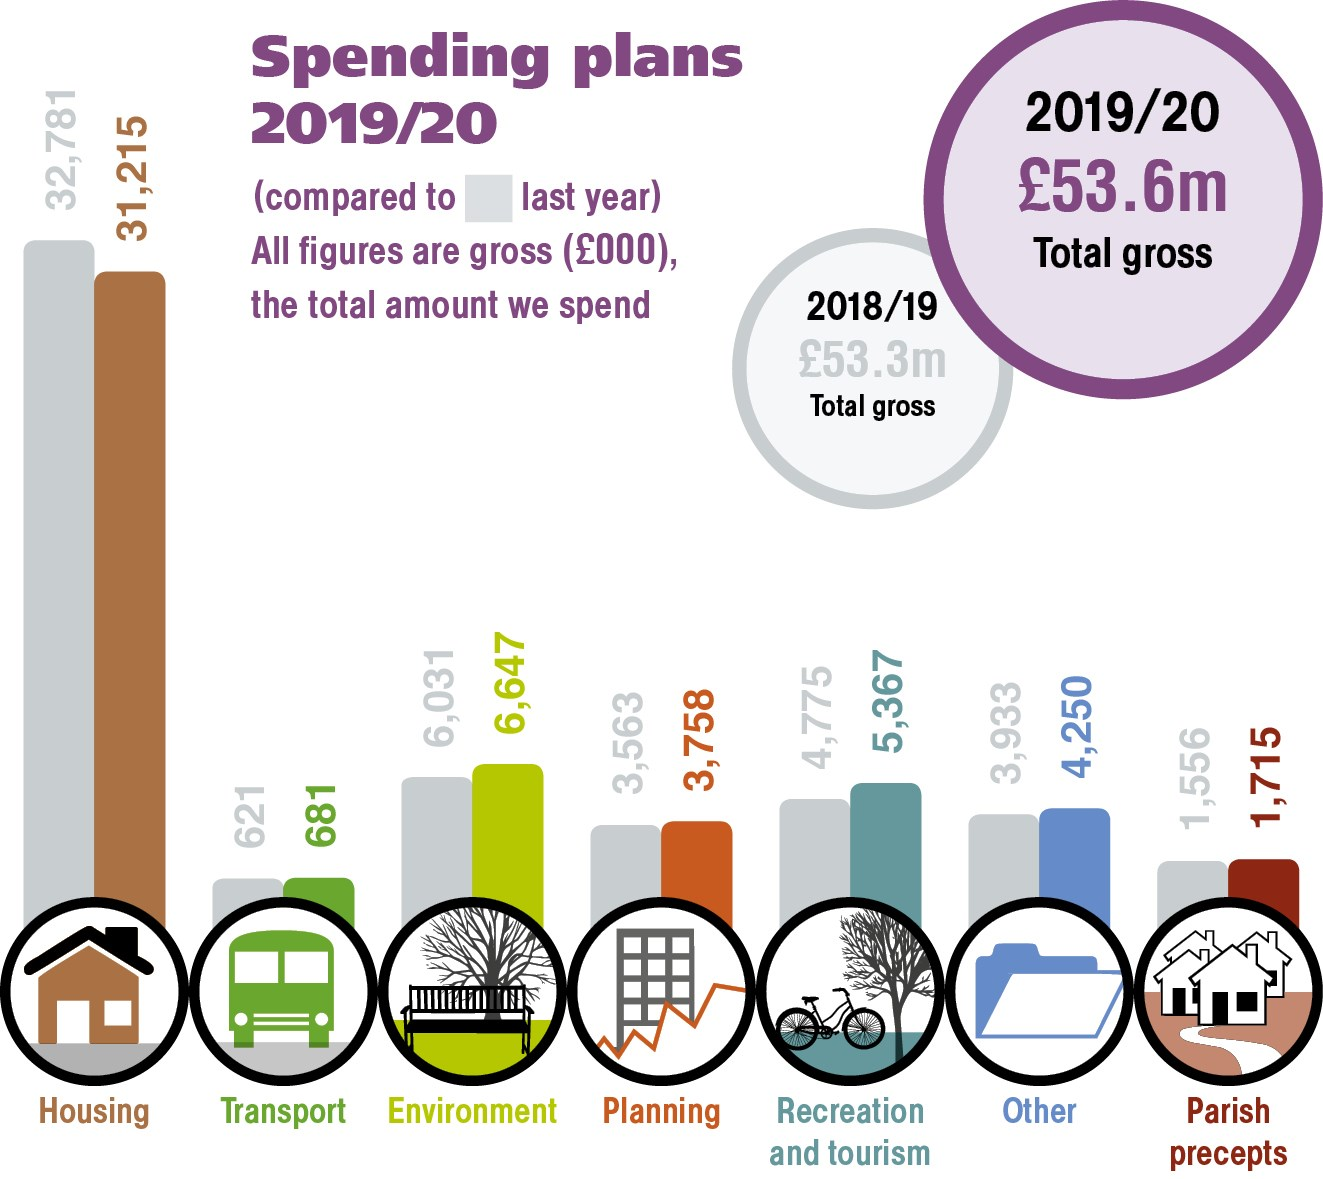 Bar chart of gross spending plans for 2019/20 compared with 2018/19